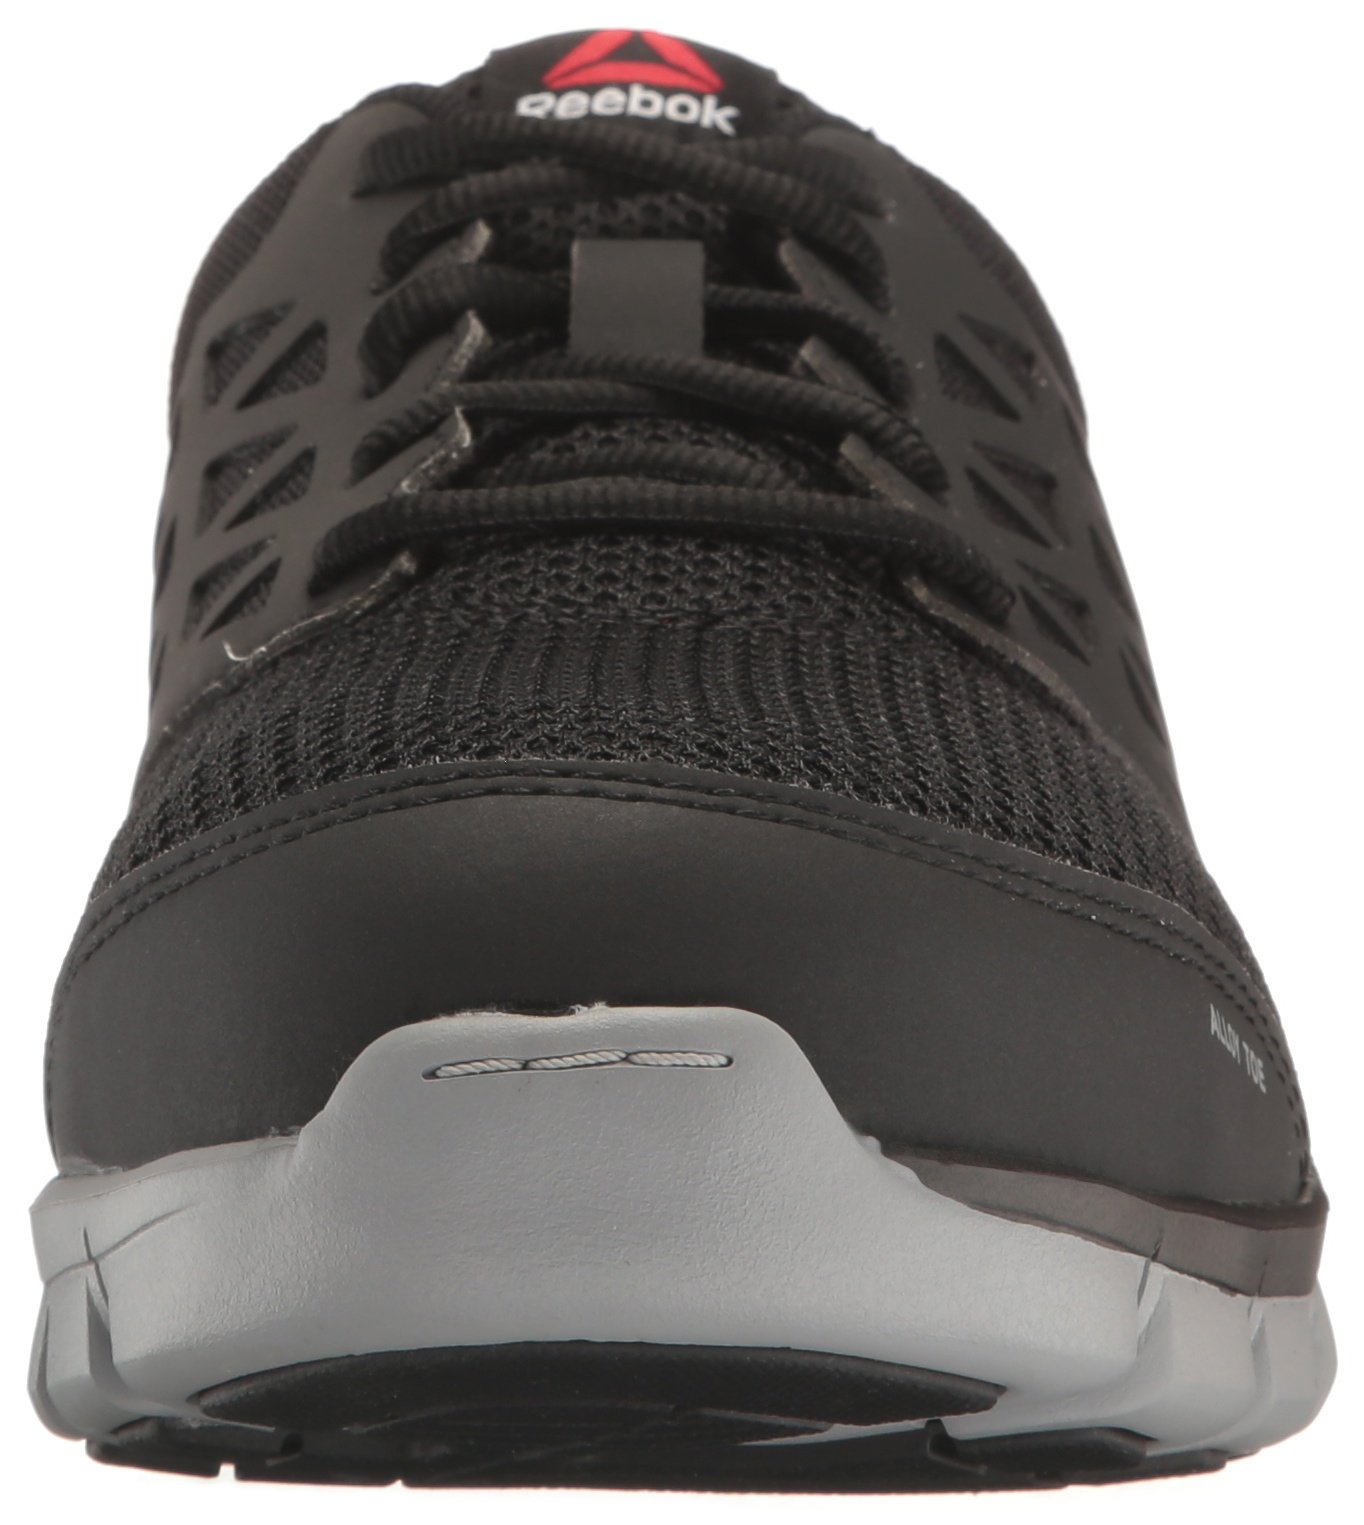 eec8374a4d45 Reebok Work Men s Sublite Cushion Work RB4041 Industrial and Construction  Shoe